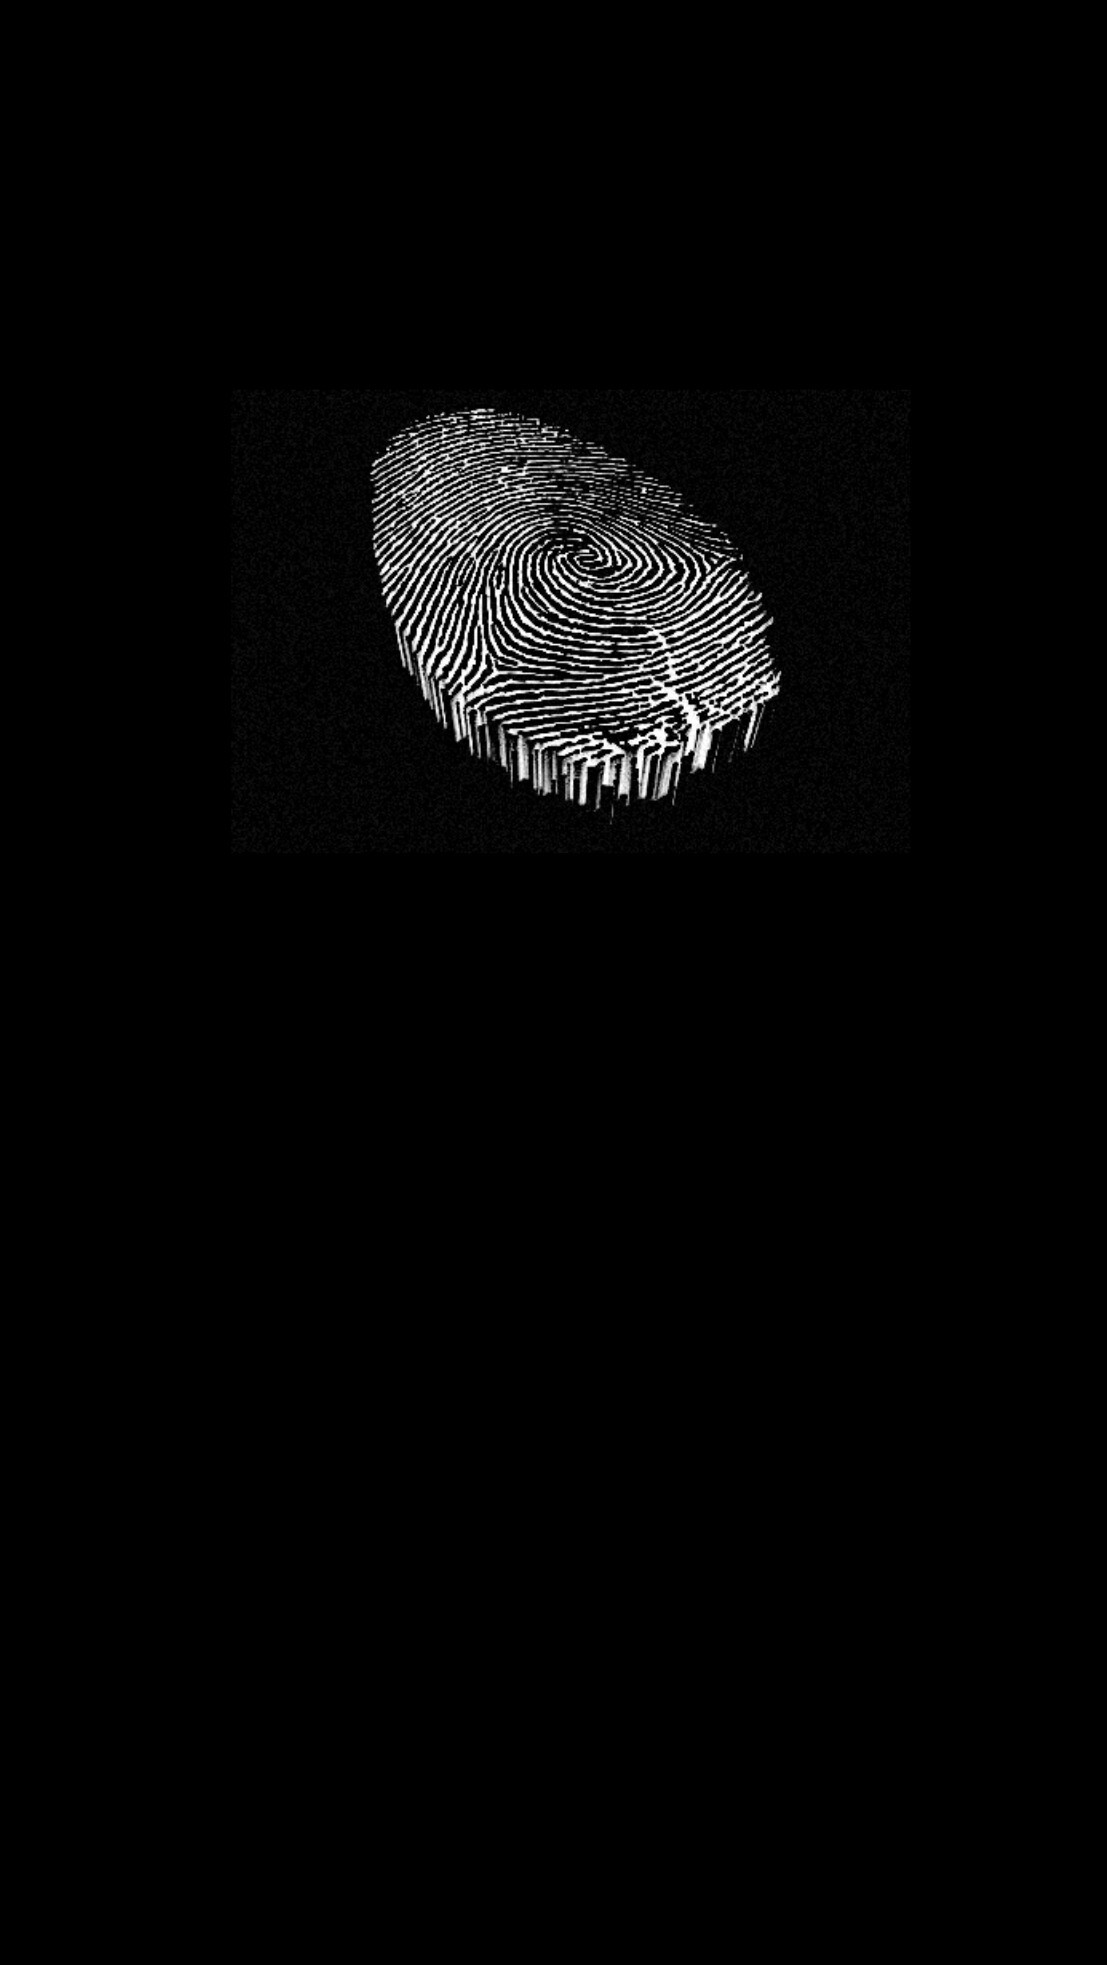 #fingerprint #black #wallpaper #iPhone #android